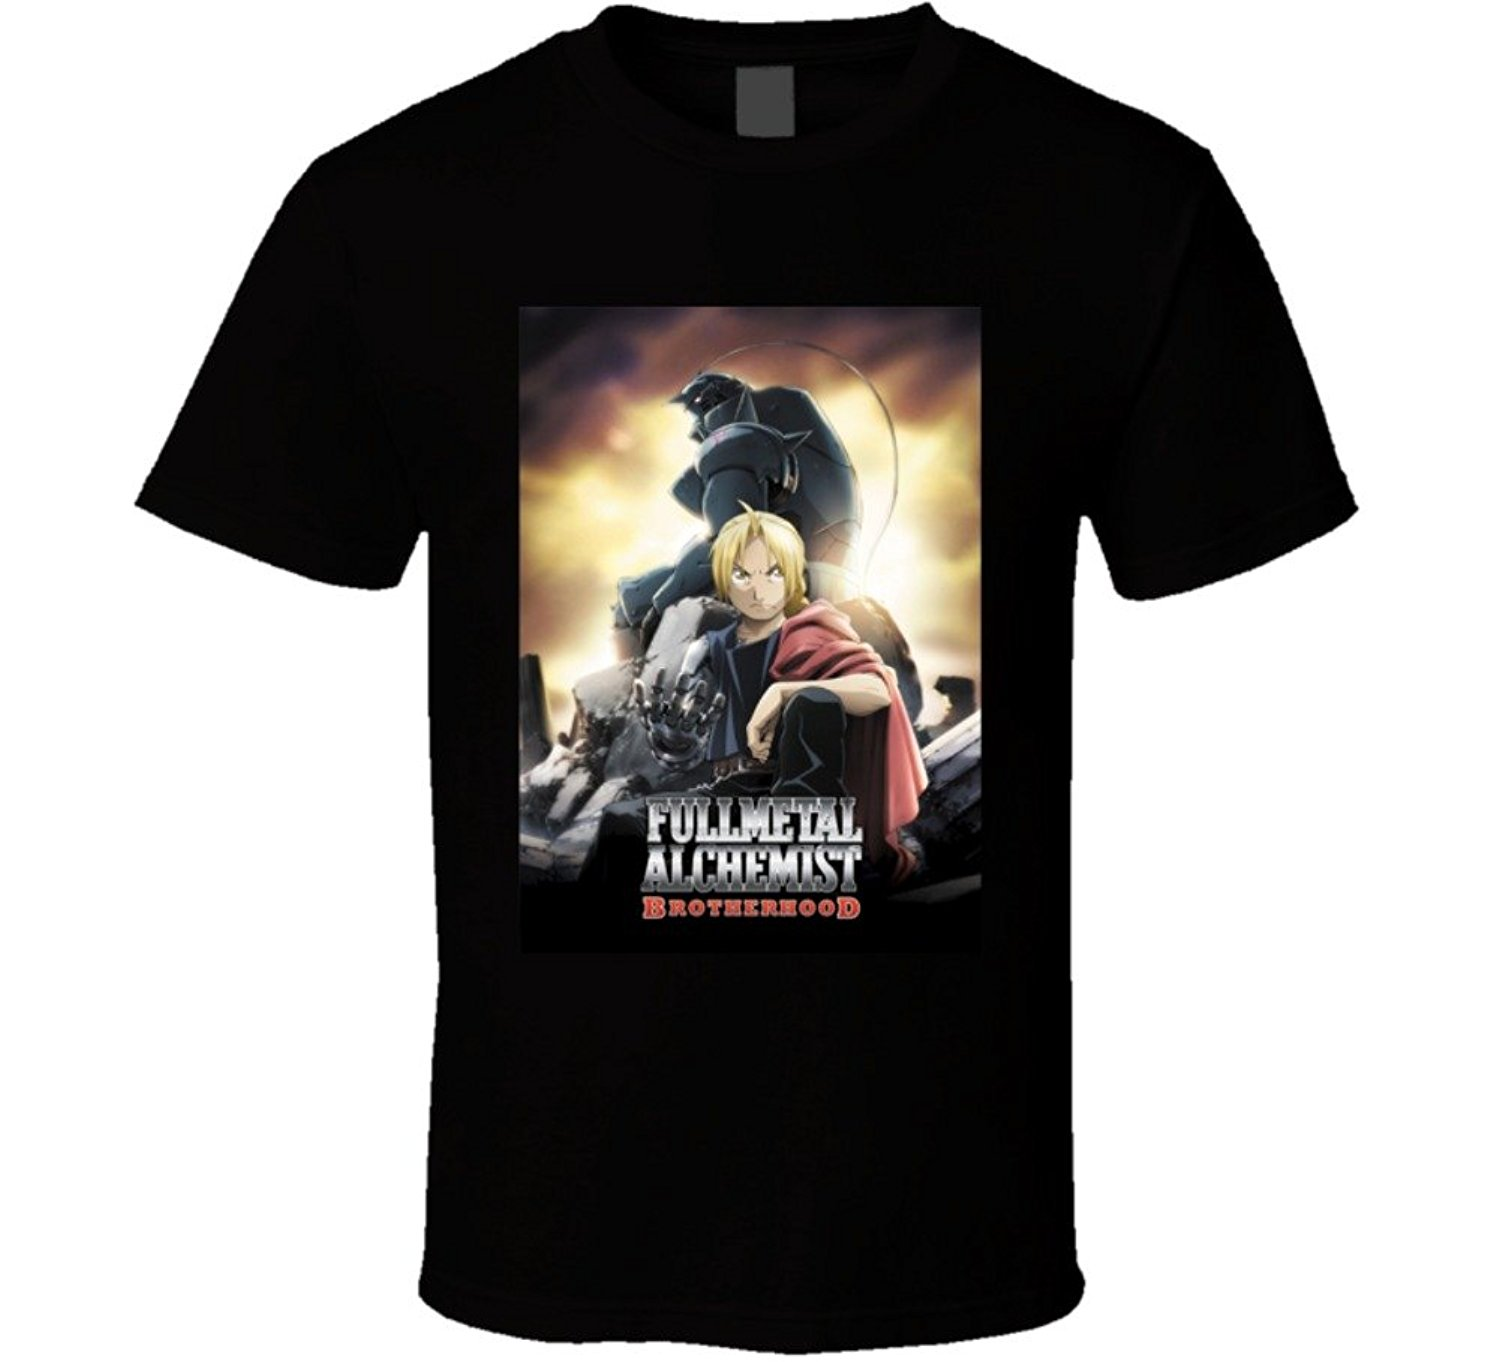 Fullmetal alchemist brotherhood anime tv show poster cool fan t shirt cotton t shirt fashion free shipping in t shirts from mens clothing on aliexpress com